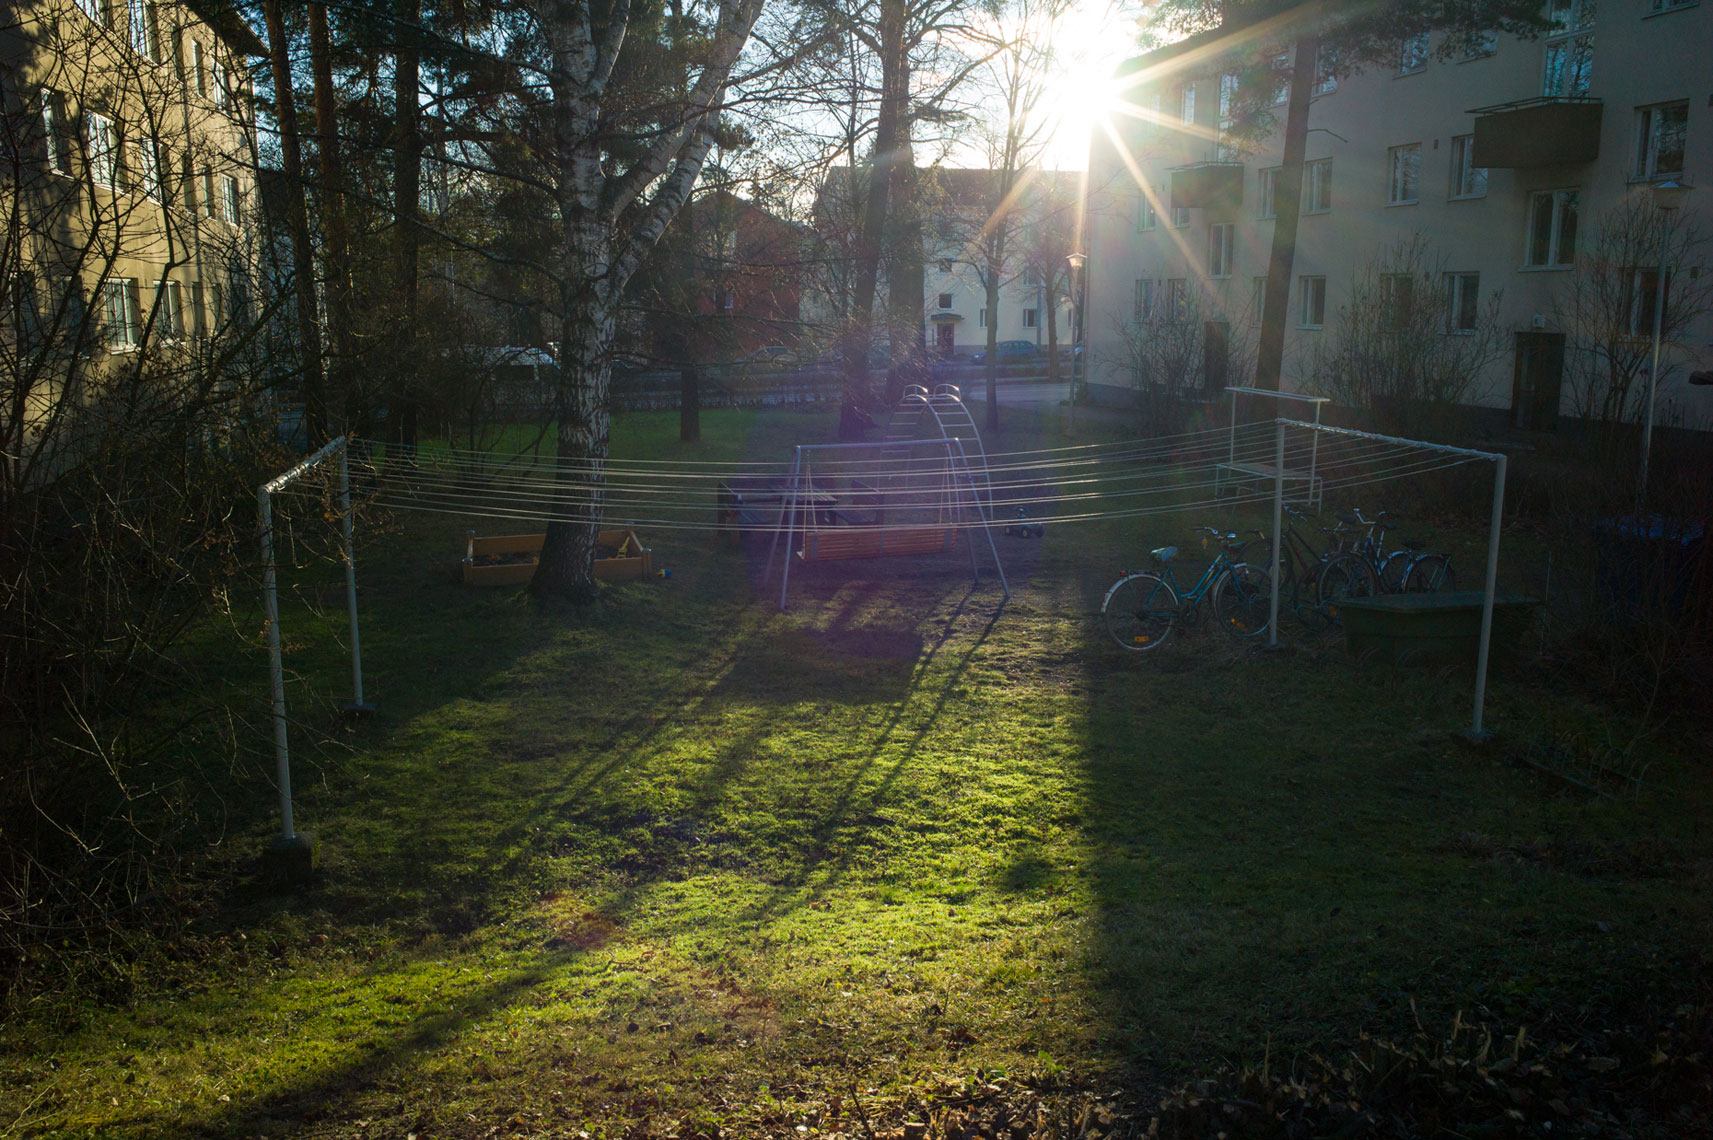 jon pack, photographer | the olympic city | helsinki, finland | village | swings